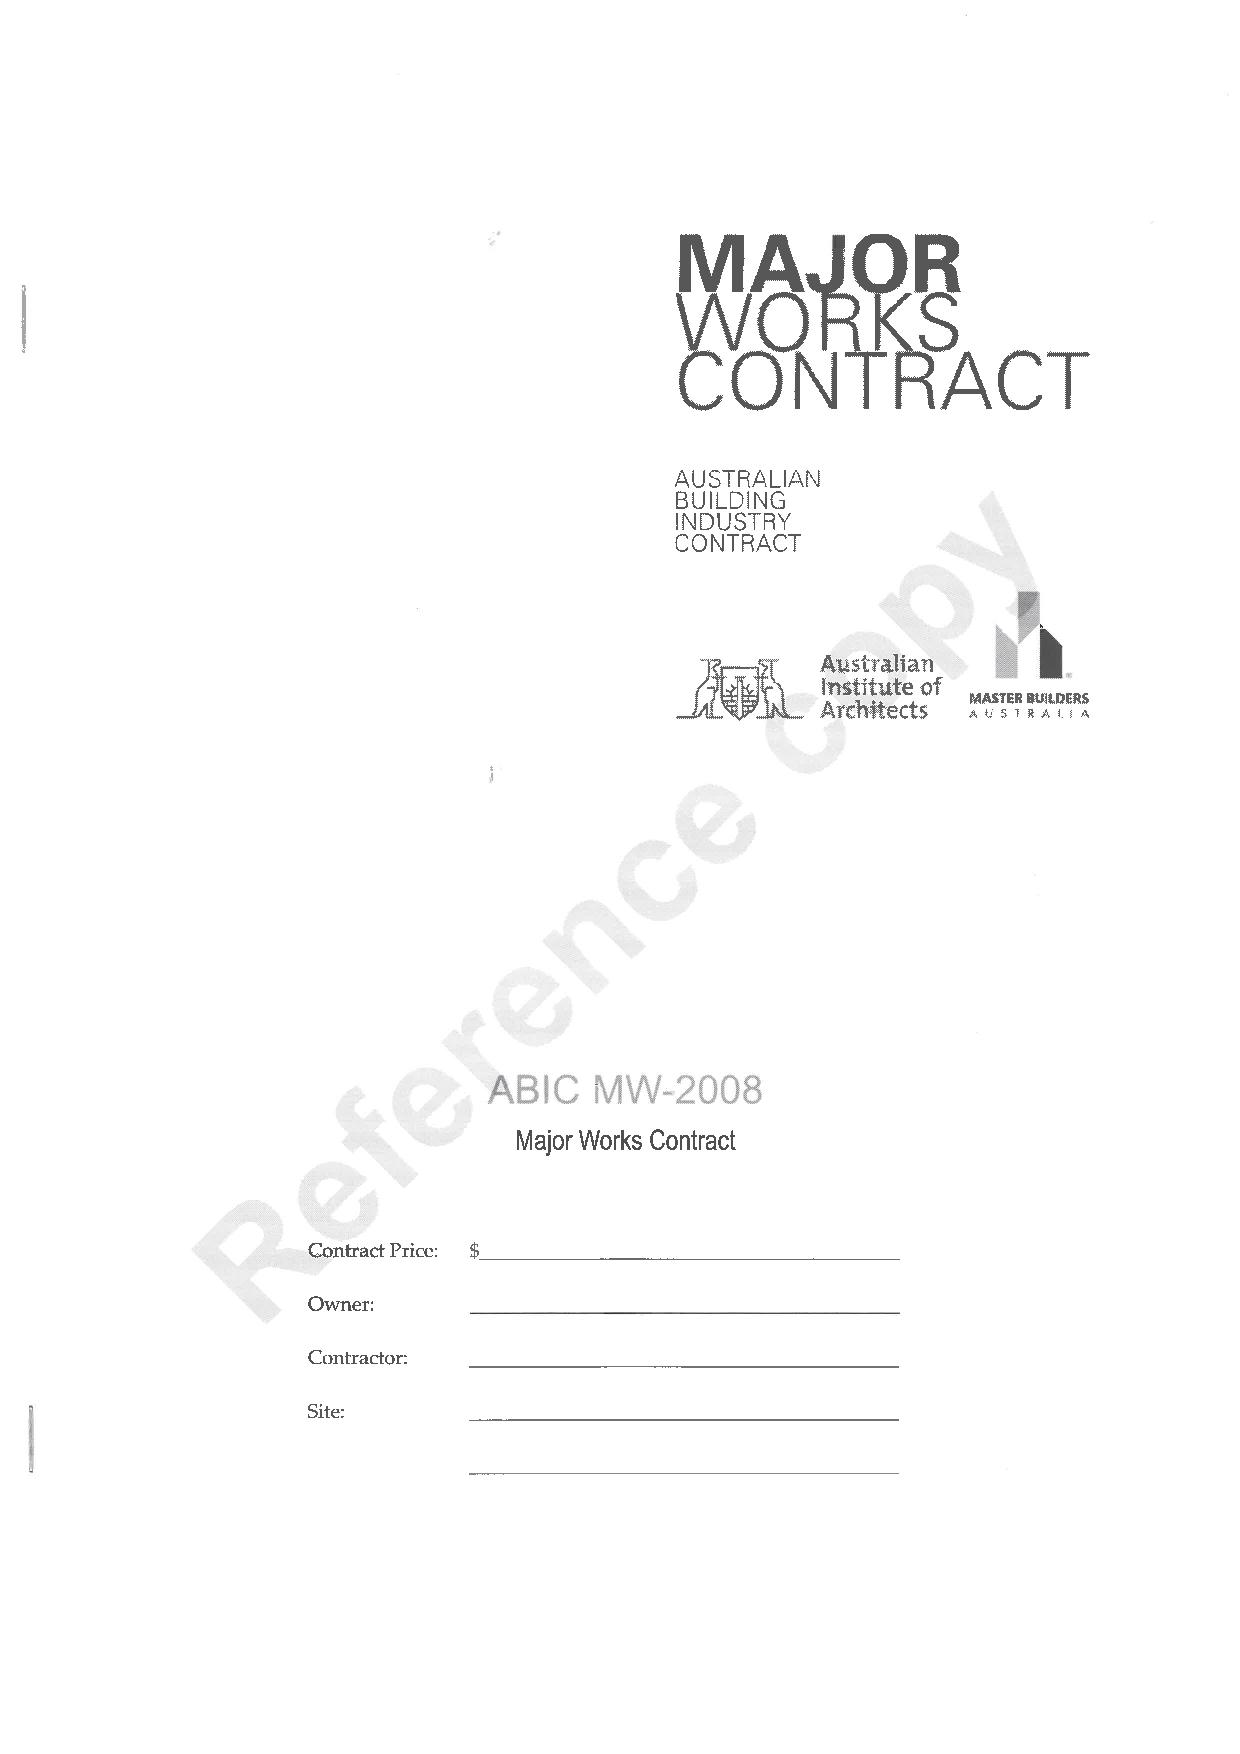 abic mw 2008 major works contract pdf